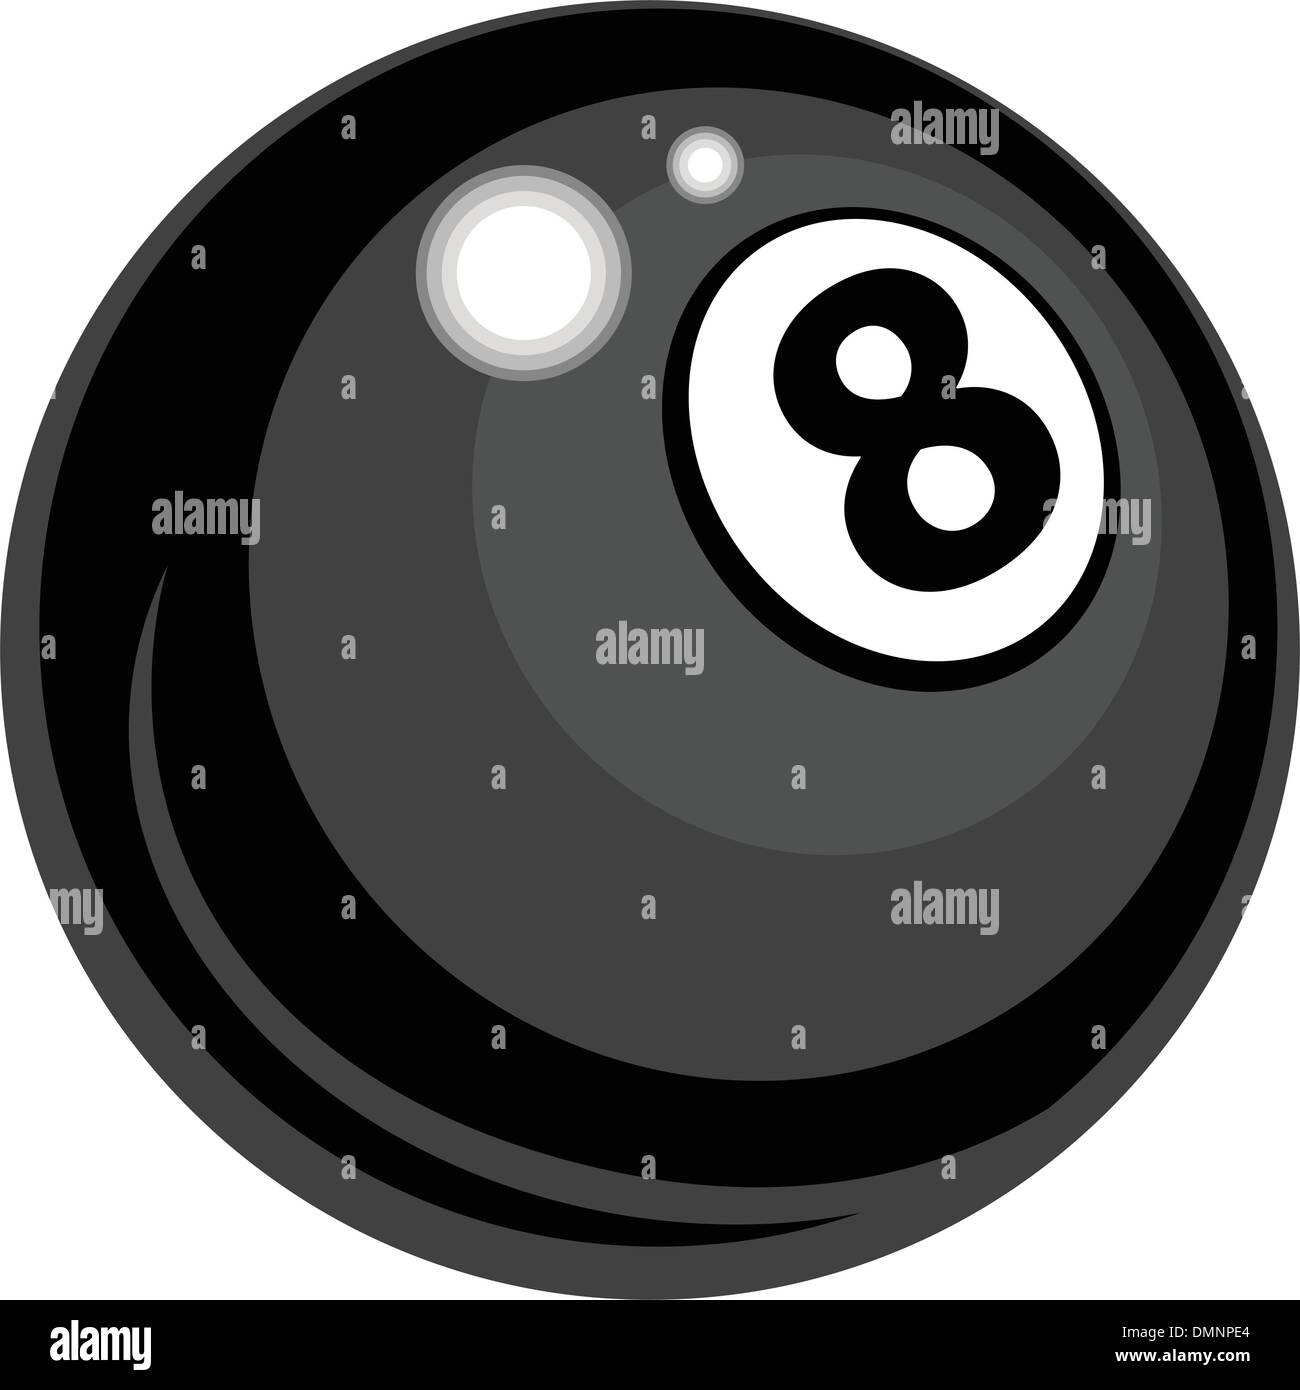 Billiards Eight Ball  Vector Design - Stock Image